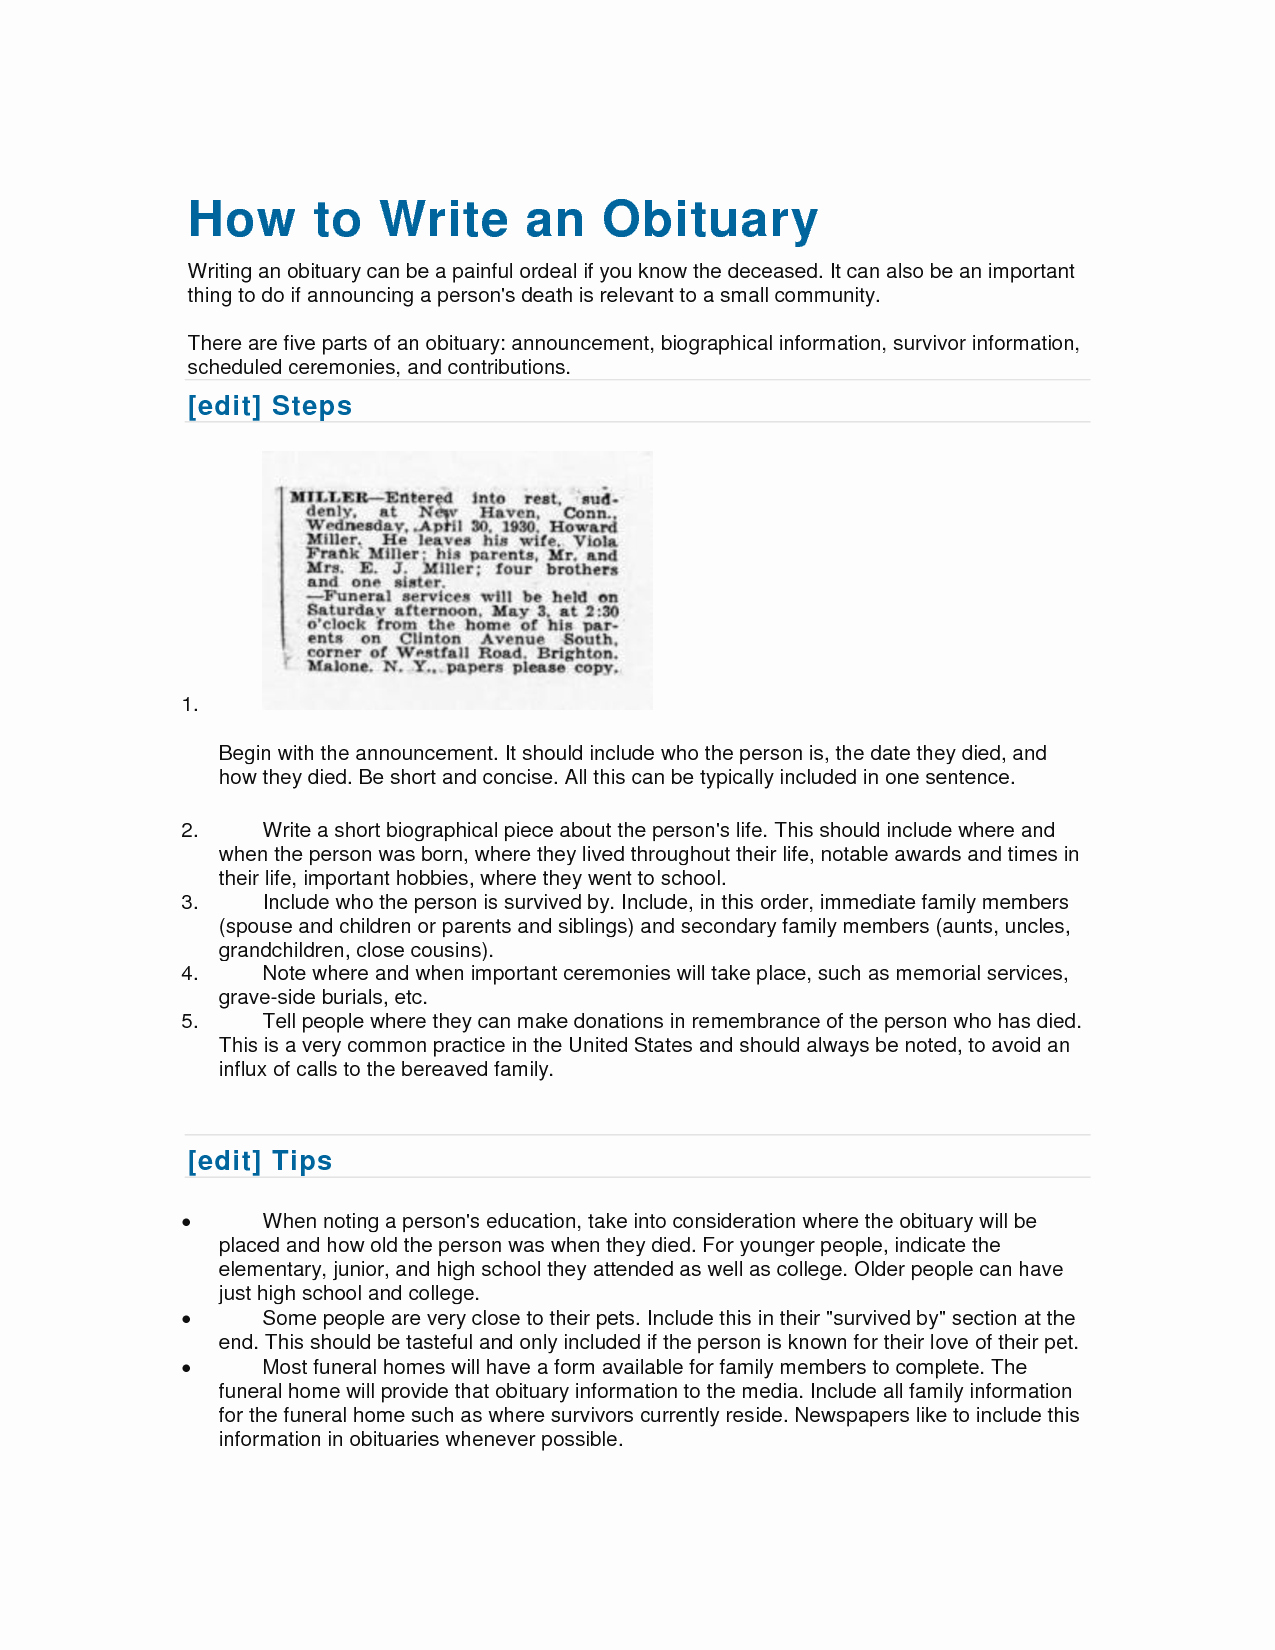 10 Best Of format to Write An Obituary How to